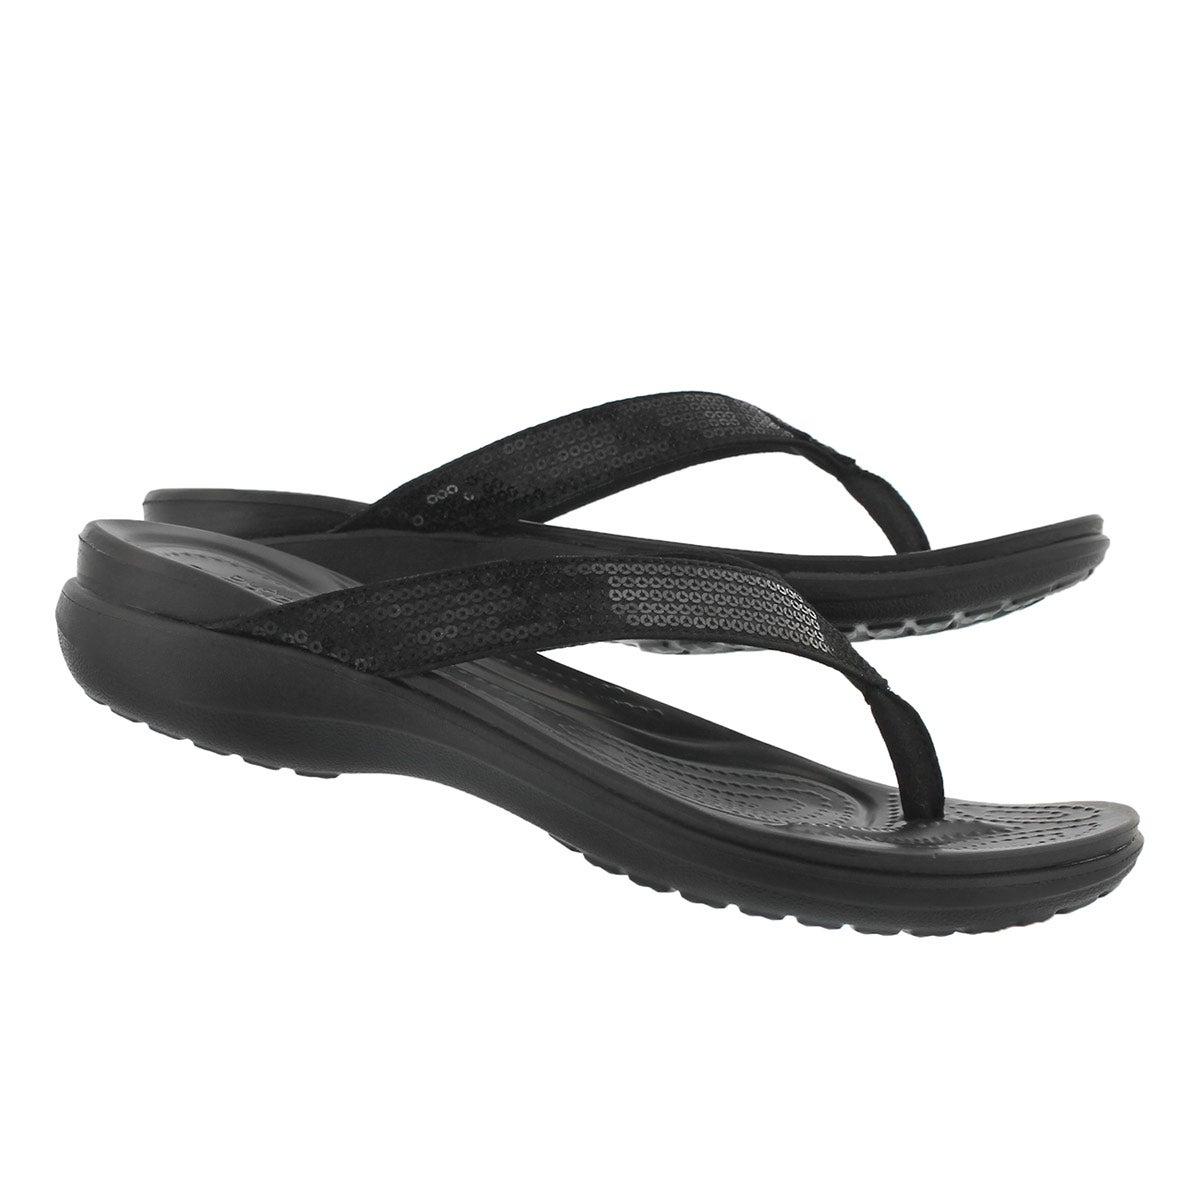 Lds Capri V Sequin black thong sandal